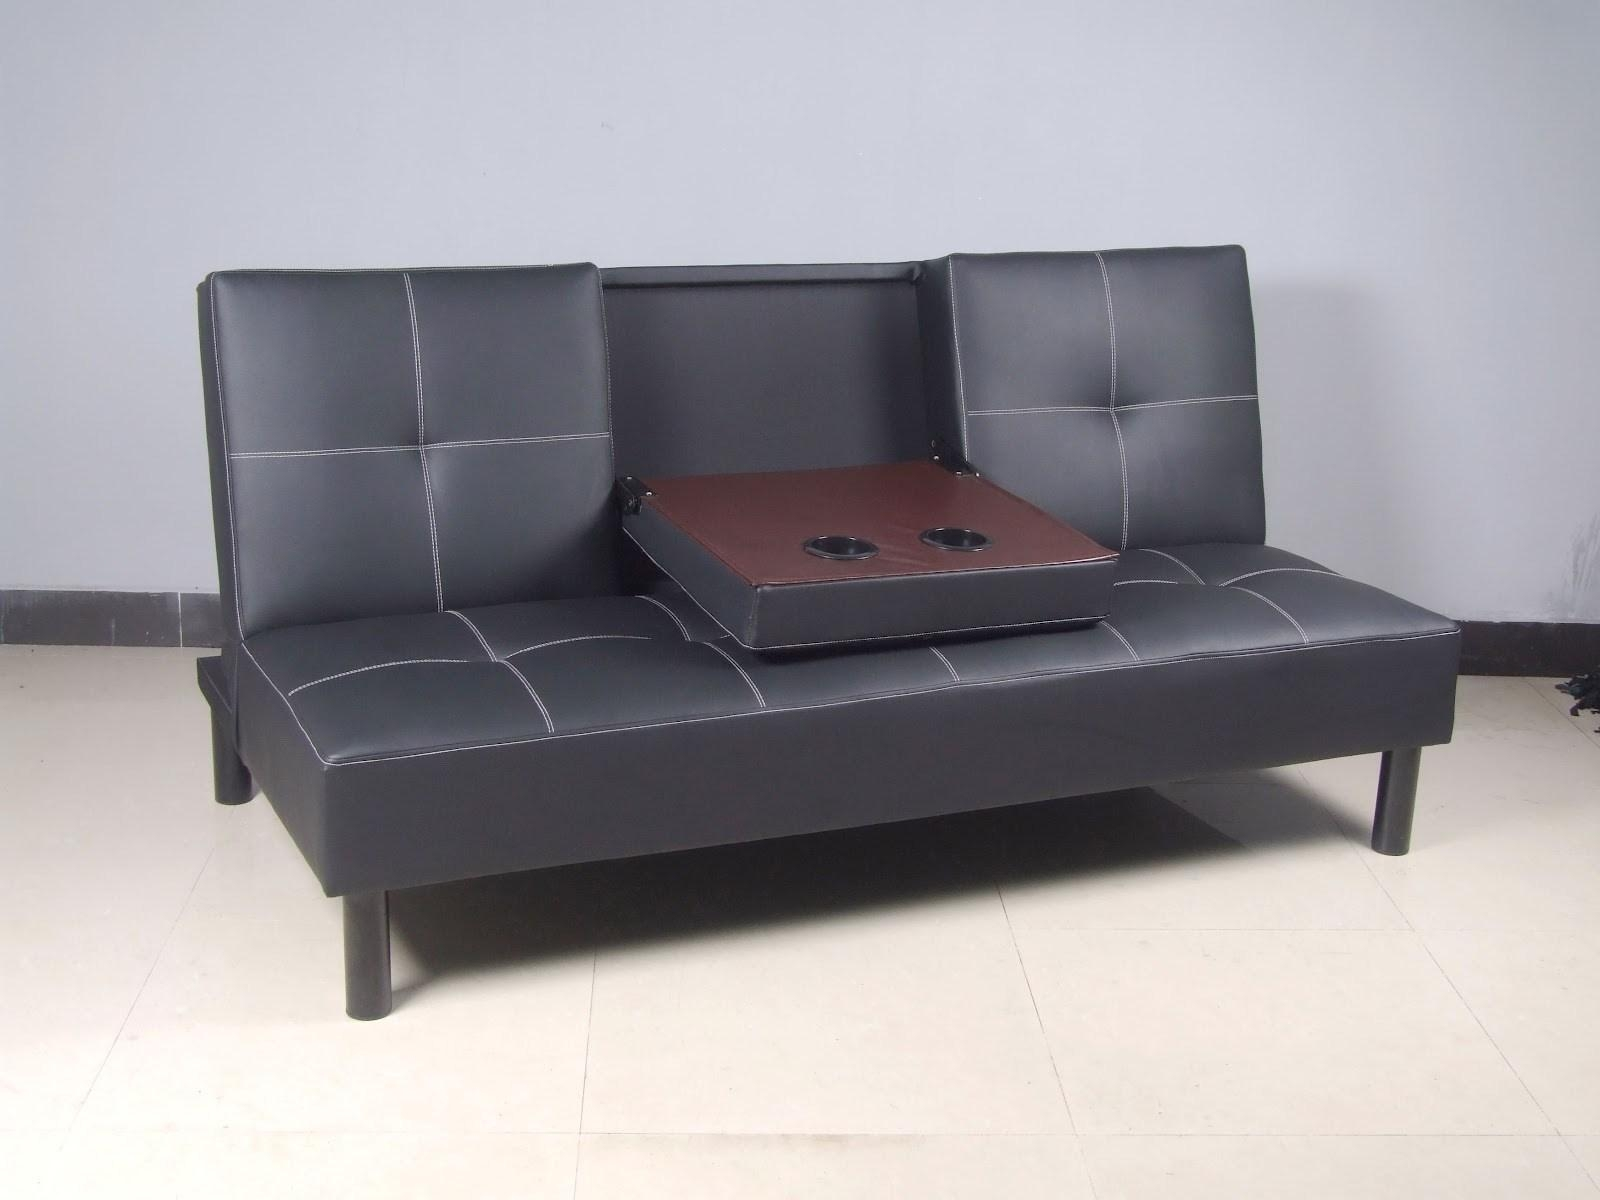 ▻ Sofa : 9 Corner Sofa Bed Ikea Alluring Sectional Sofa Bed Ikea With Regard To Cheap Corner Sofa Beds (Image 1 of 20)